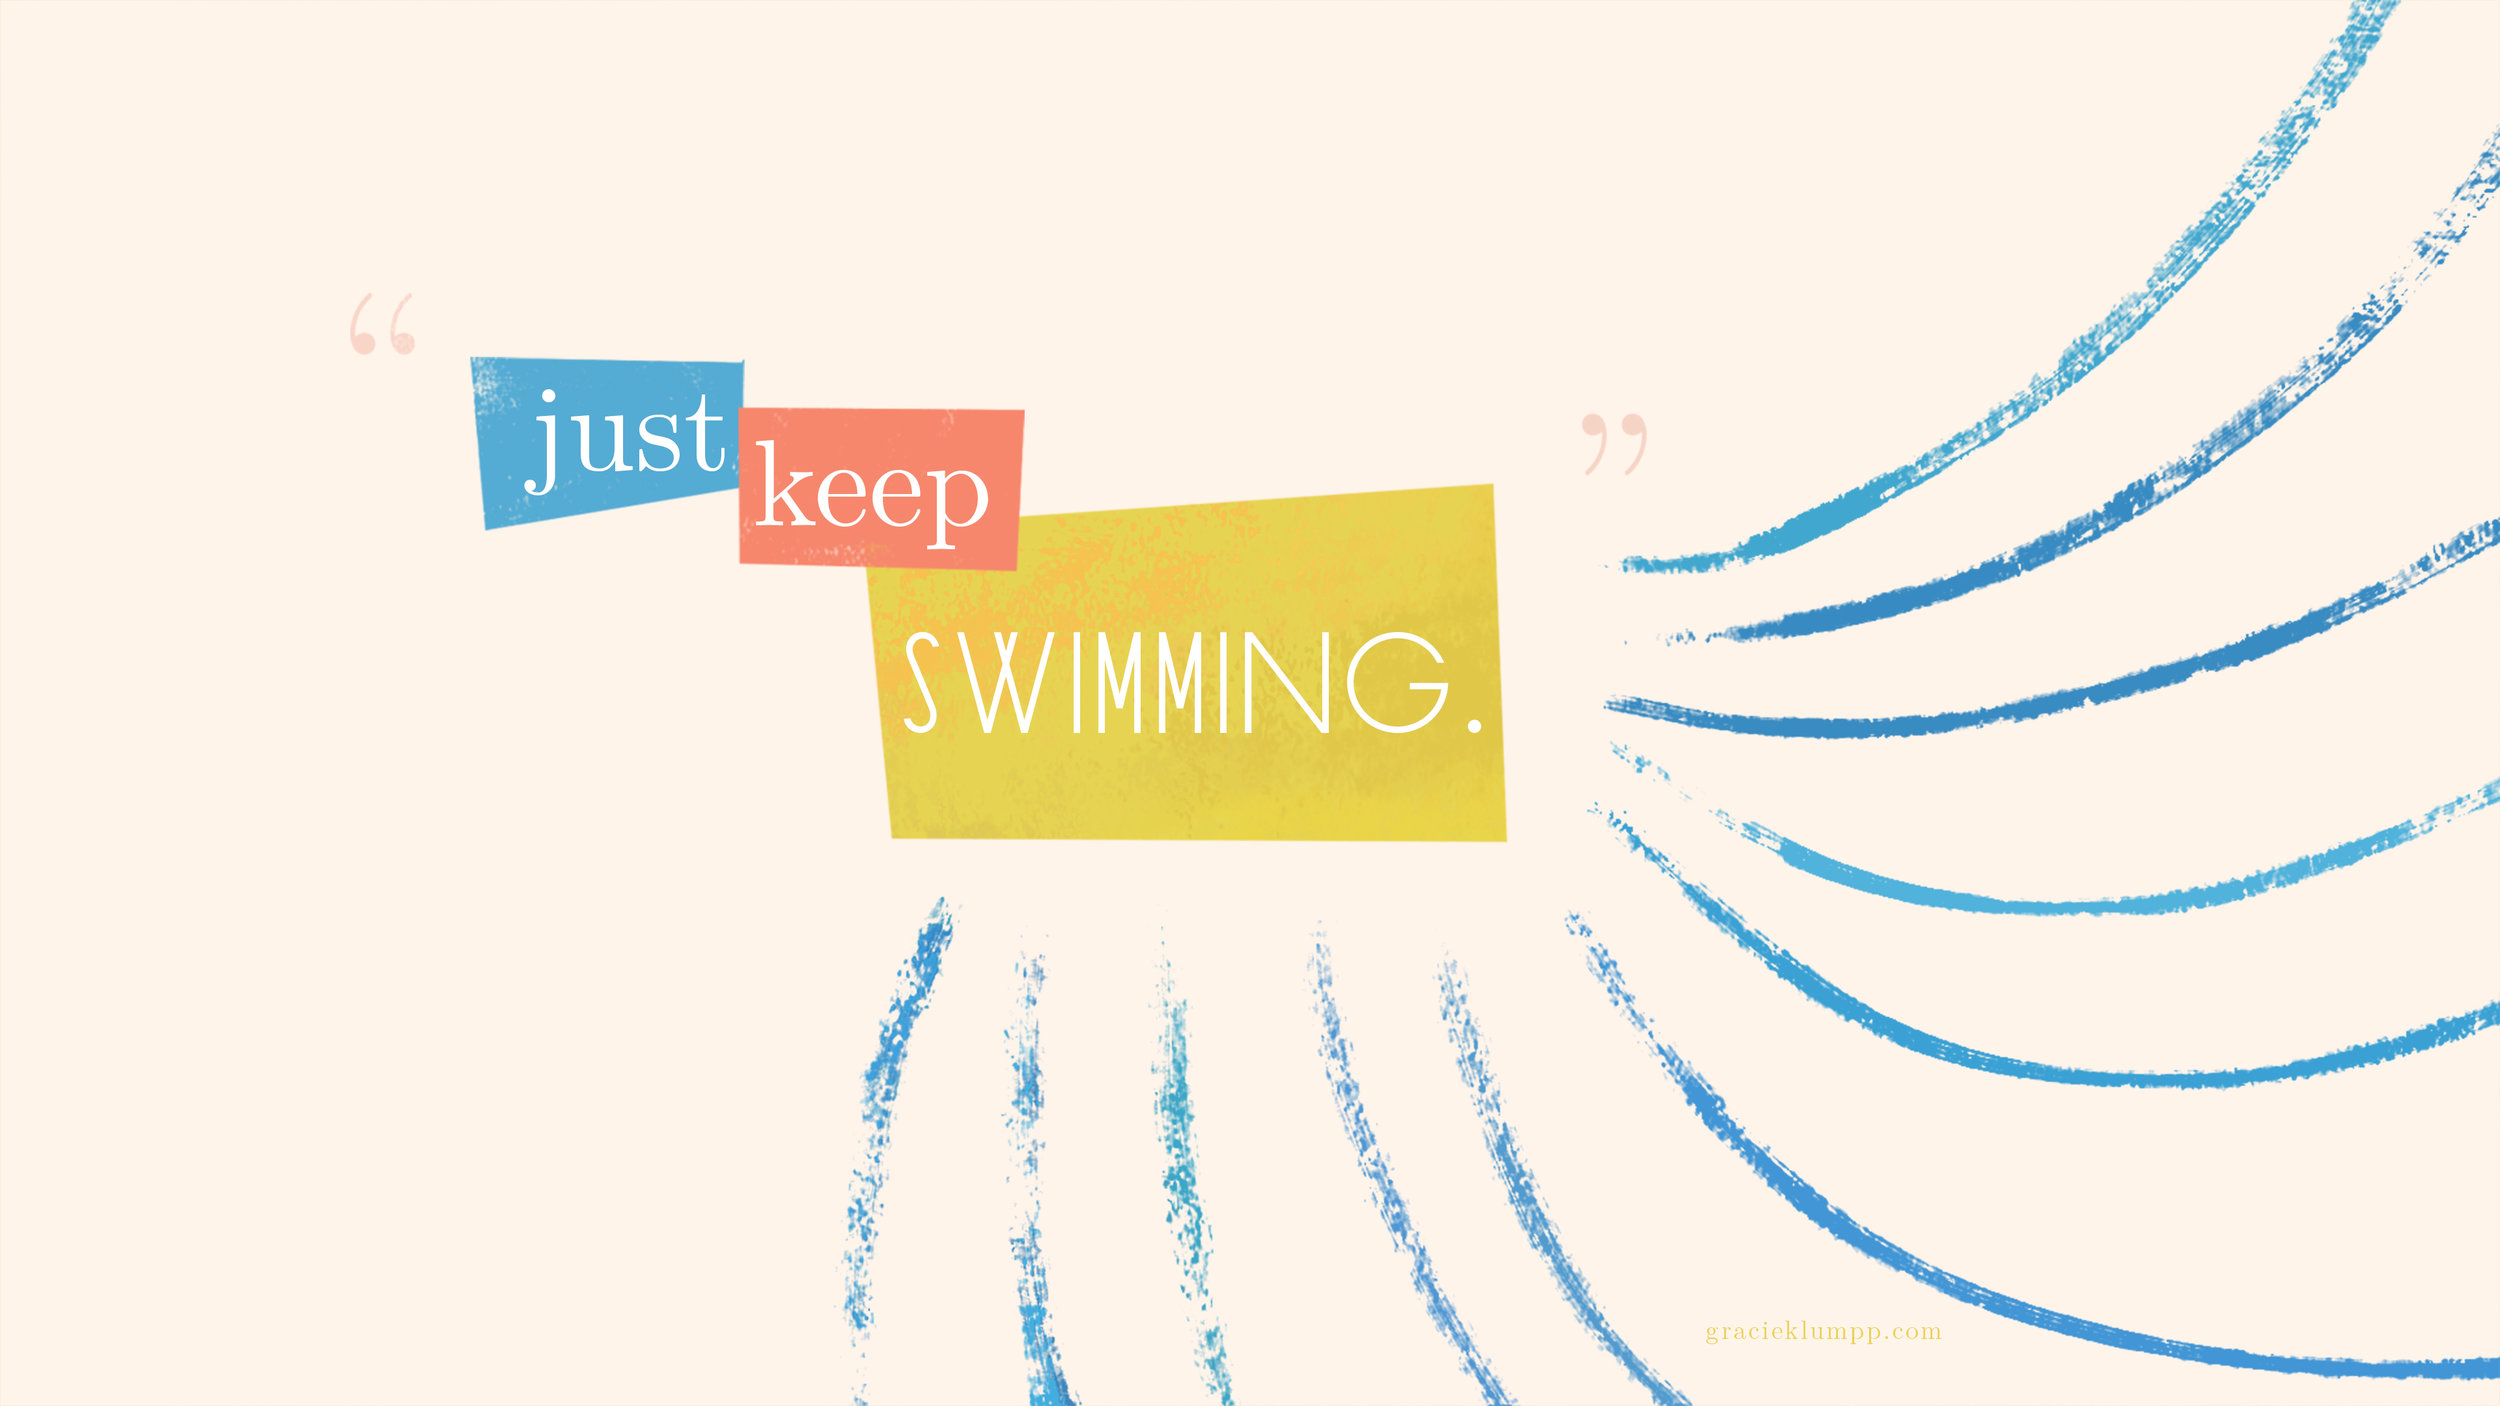 GracieKlumpp_justkeepswimming_desktopwallpaper.jpg